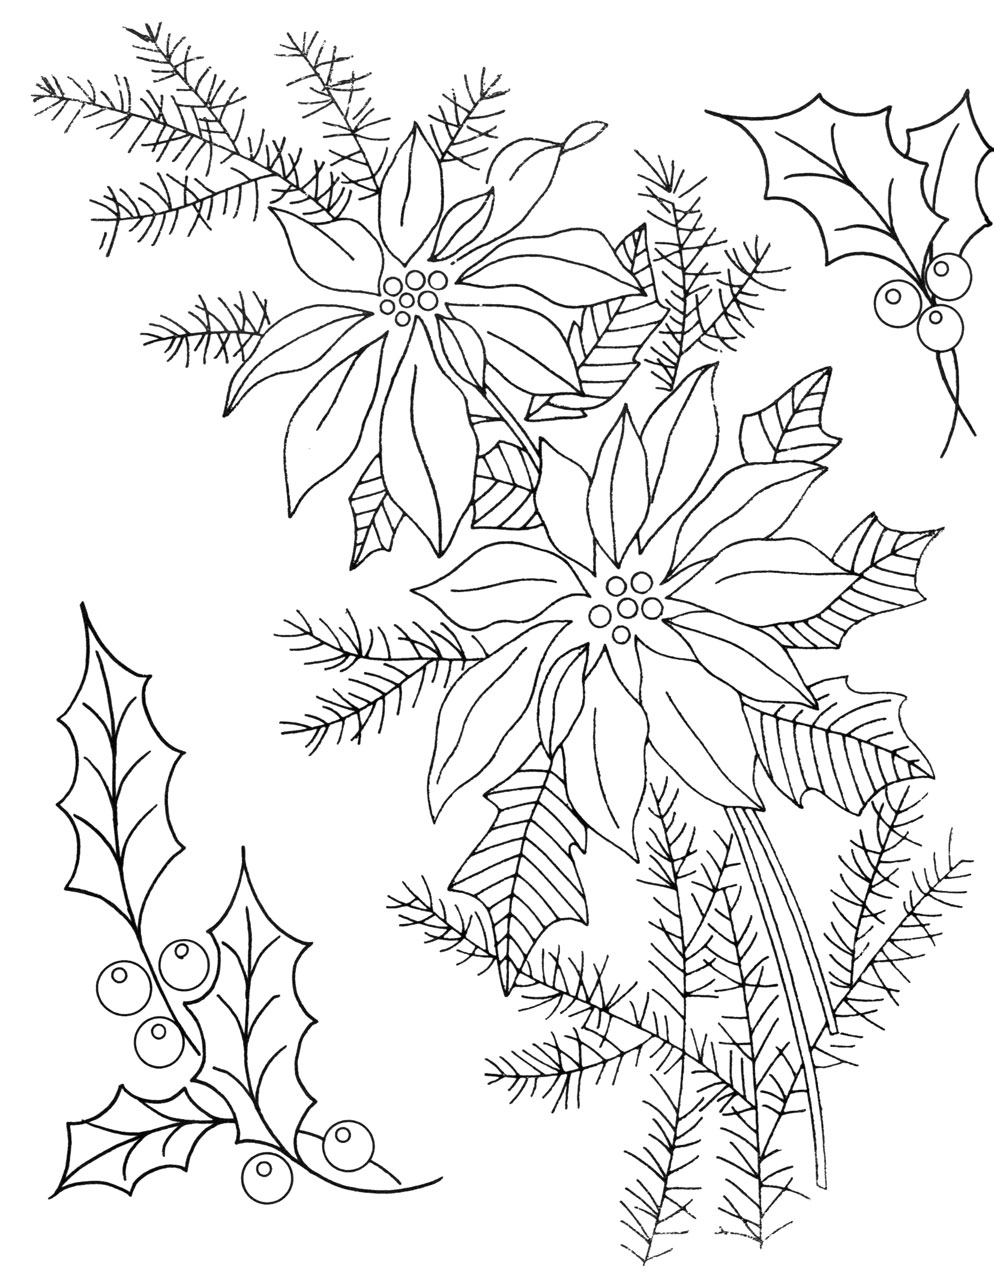 photo about Poinsettia Pattern Printable named Printable Poinsettia Behavior - Coloring Dwelling